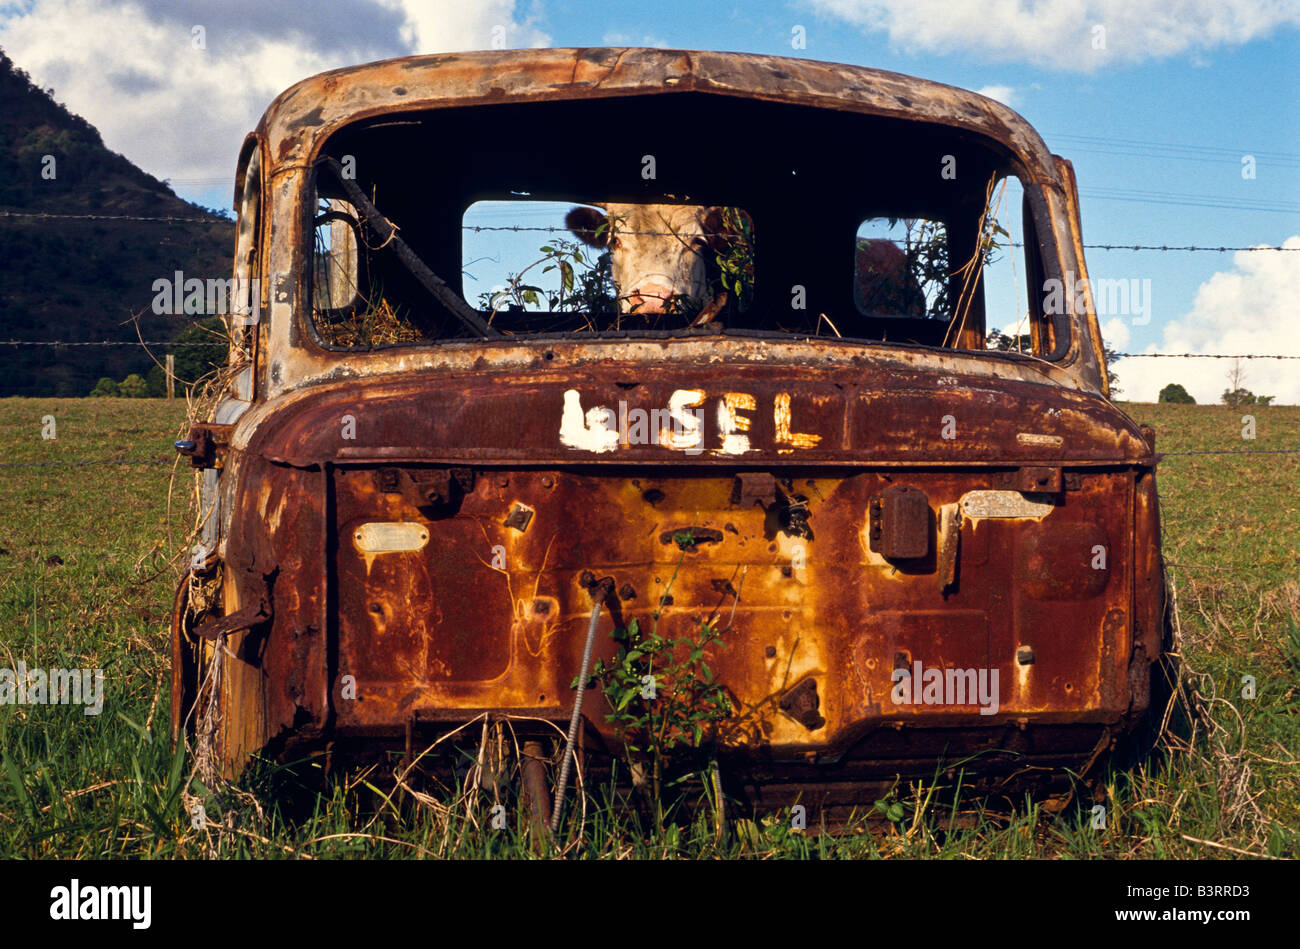 Old Rusted Car Sale Sign Stock Photos & Old Rusted Car Sale Sign ...